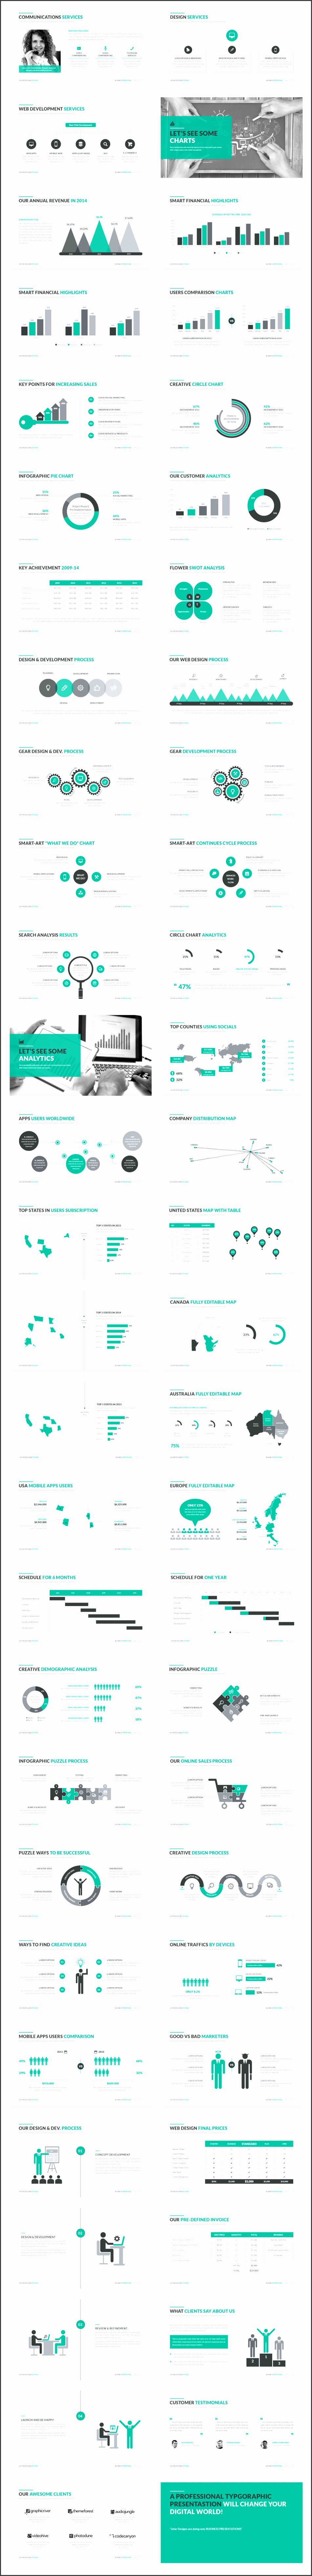 Business Proposal PowerPoint Template is a clean simple and unique Business Presentation It contains a lot of handmade diagrams graphs infographics and